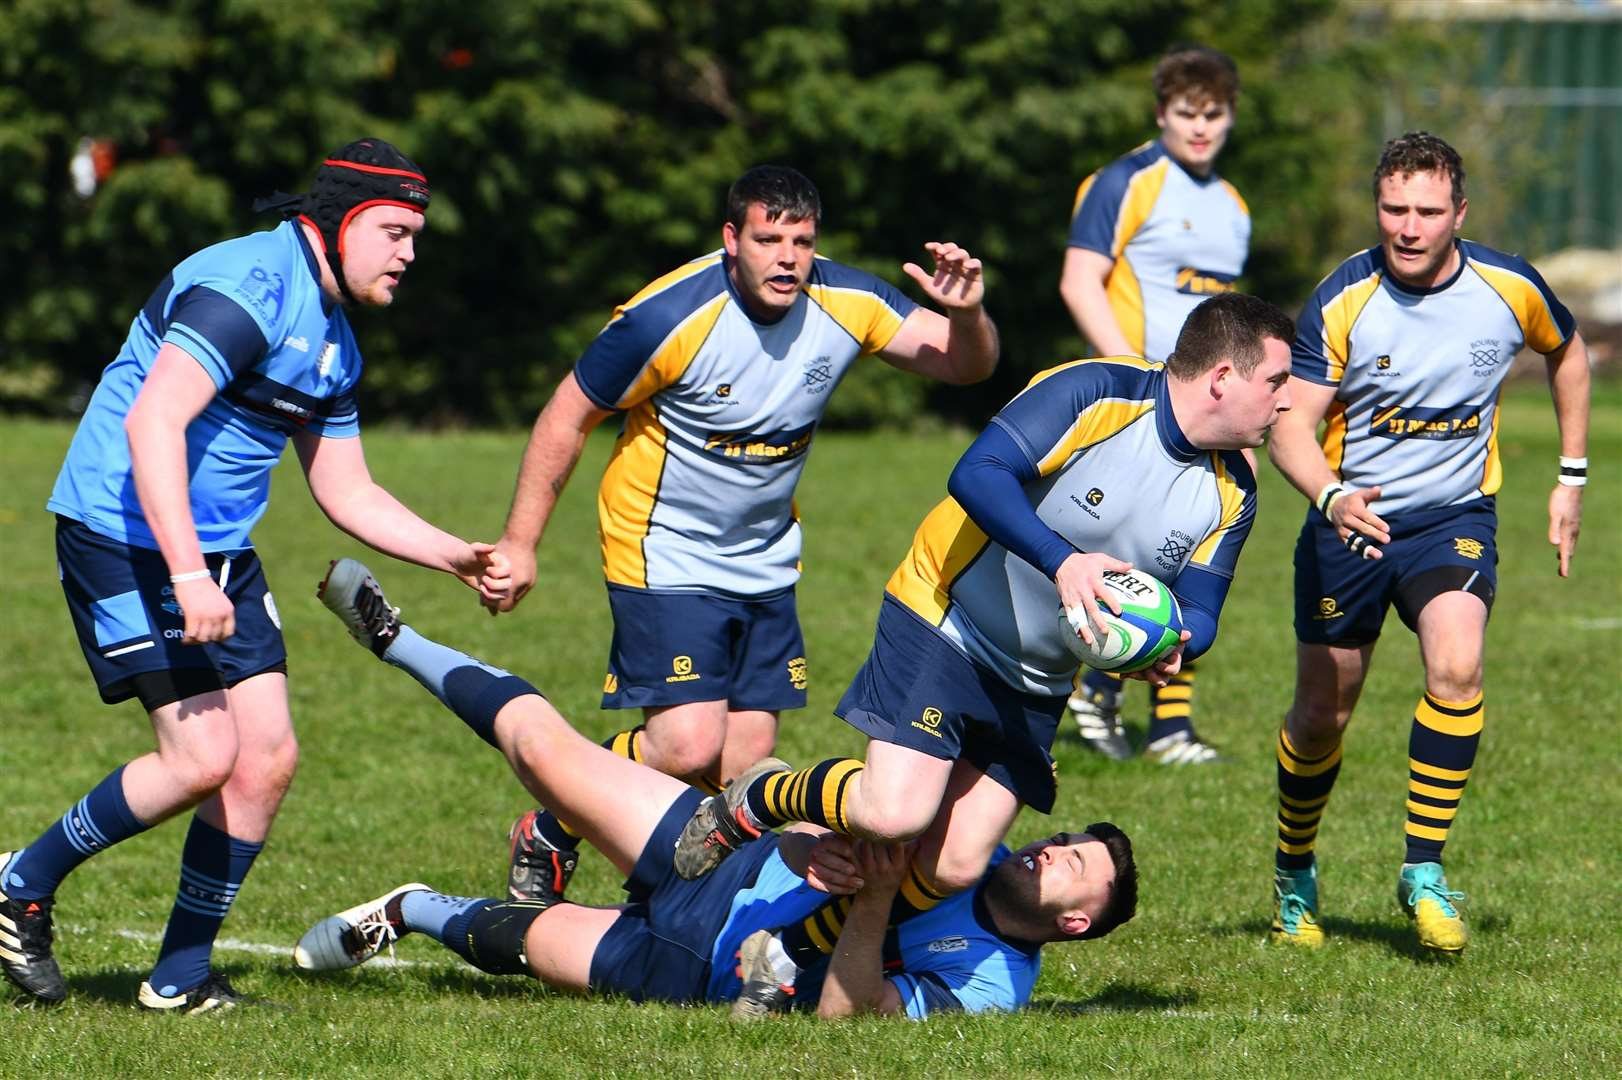 Bourne were 73-7 victors over St Neots on Saturday. Photo: Alan Hancock (8605643)